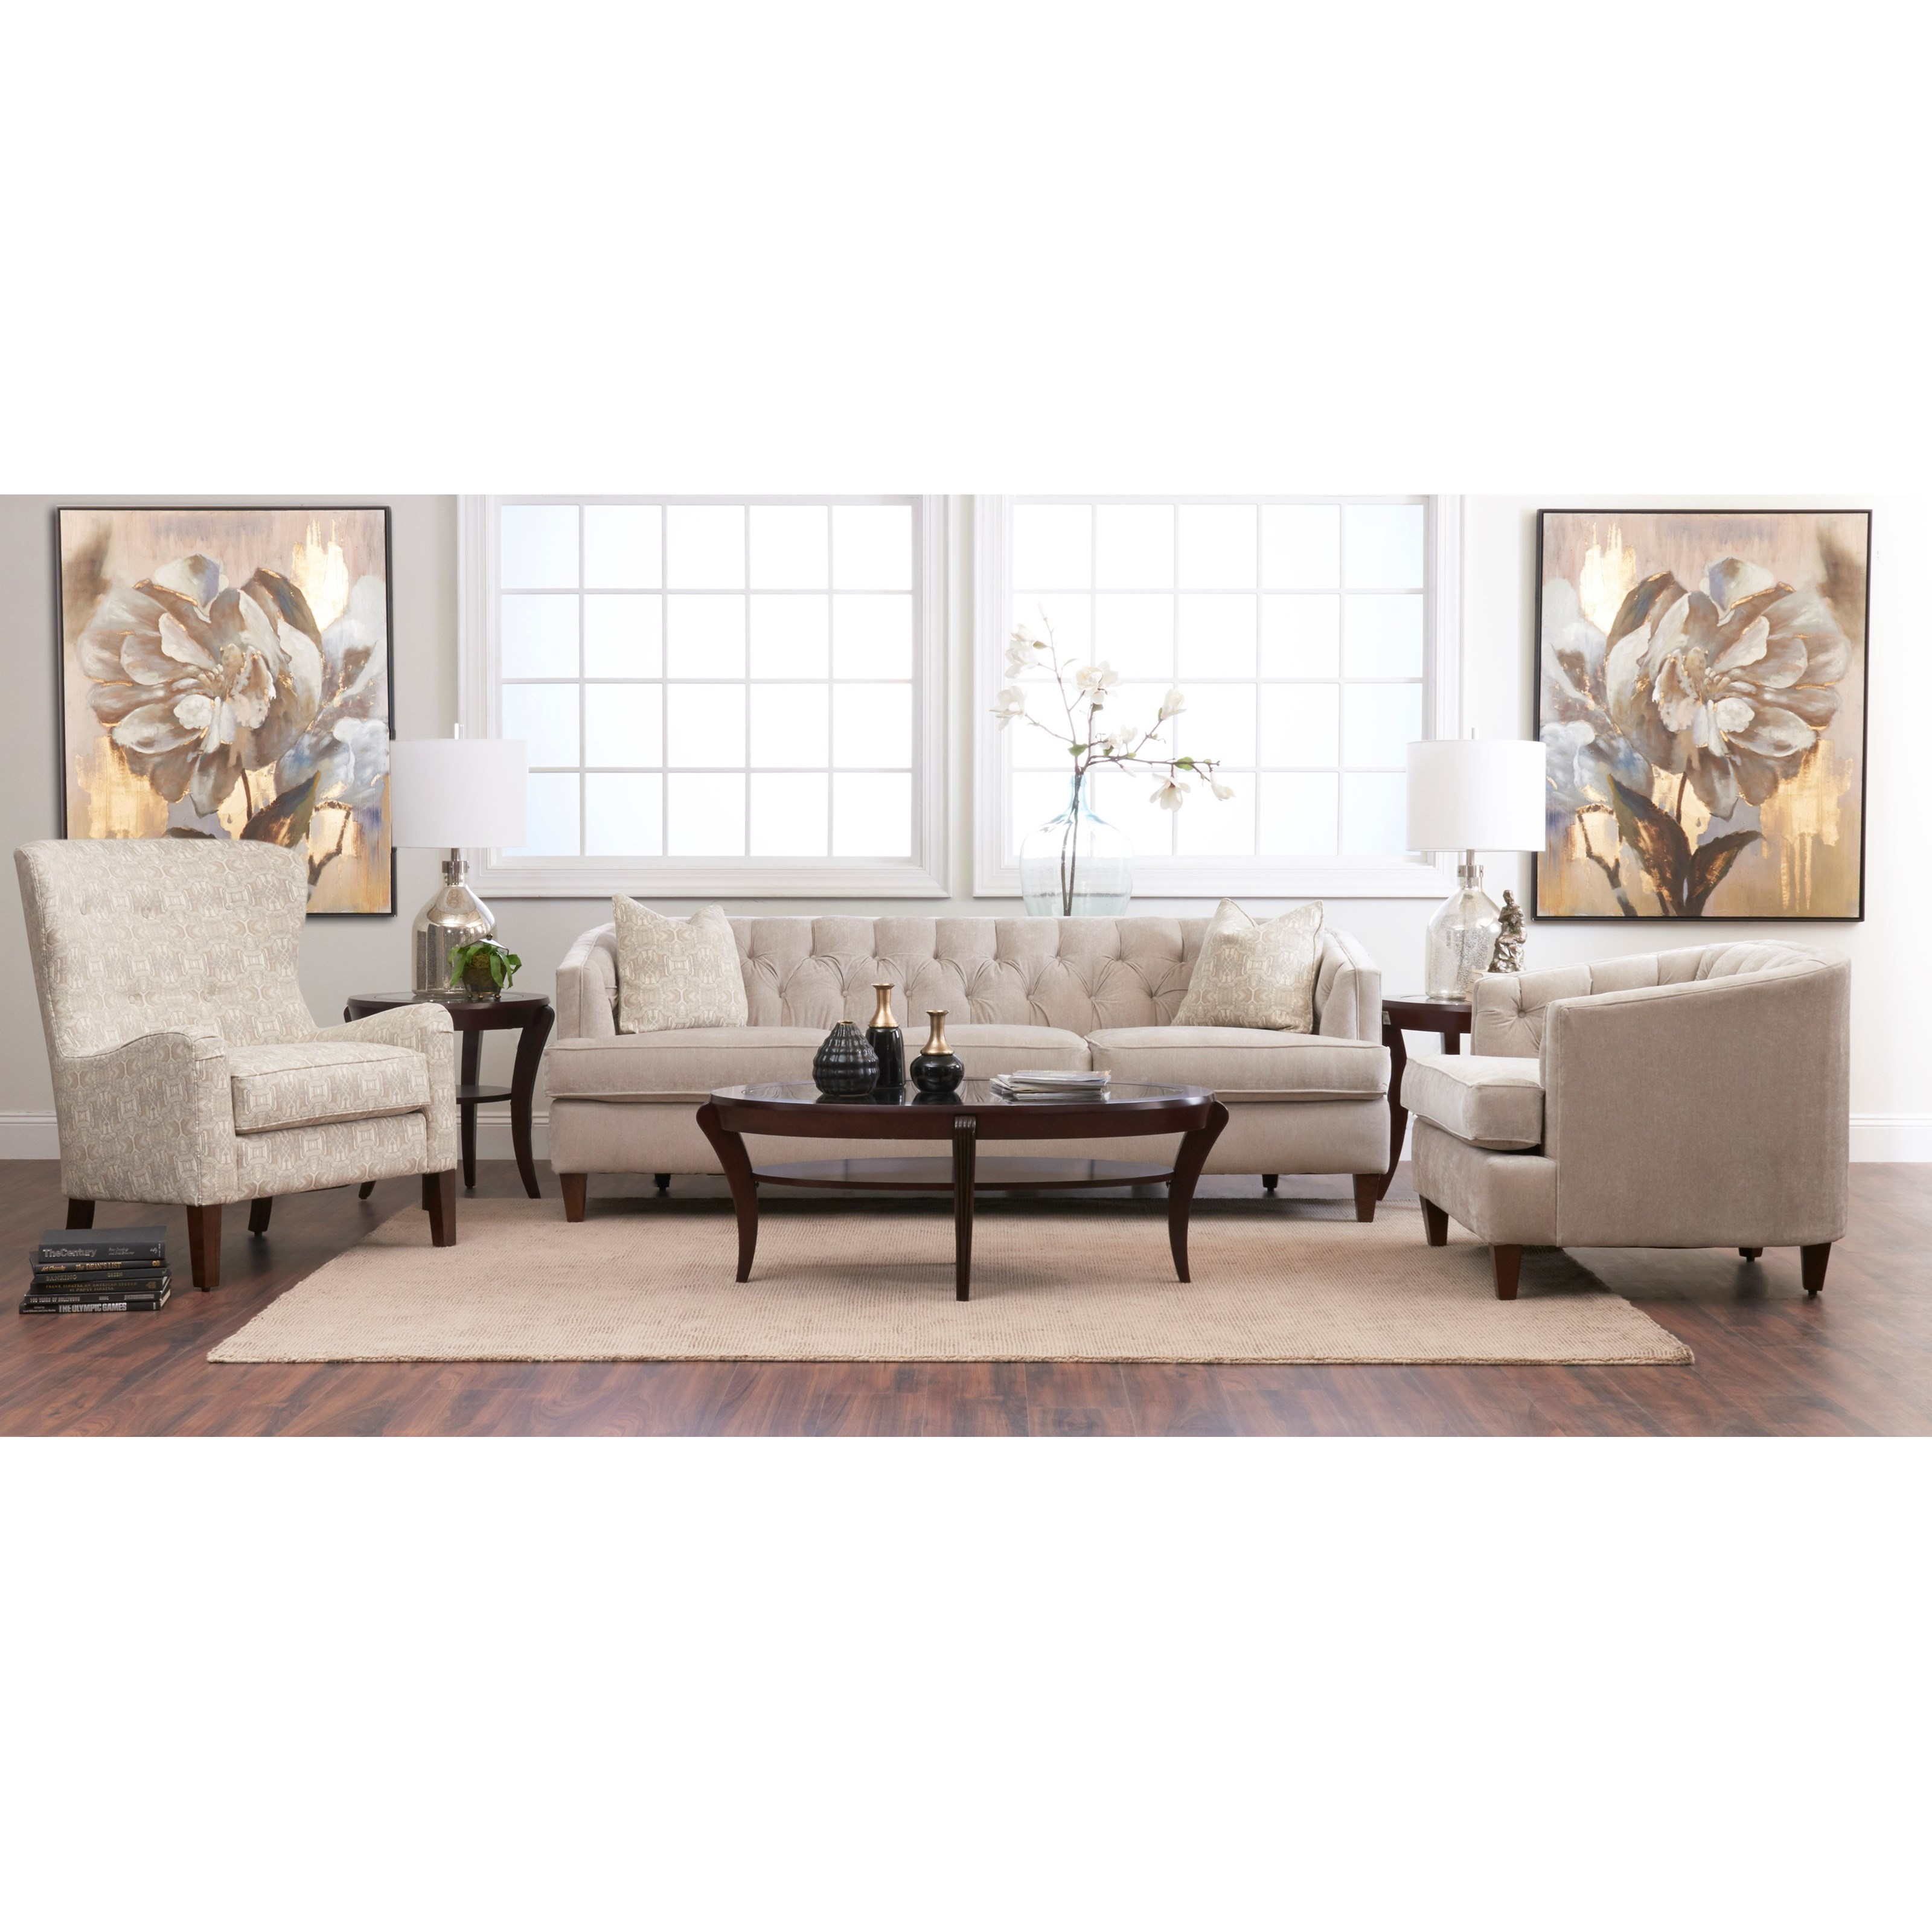 Kimbal Living Room Group by Klaussner at Godby Home Furnishings